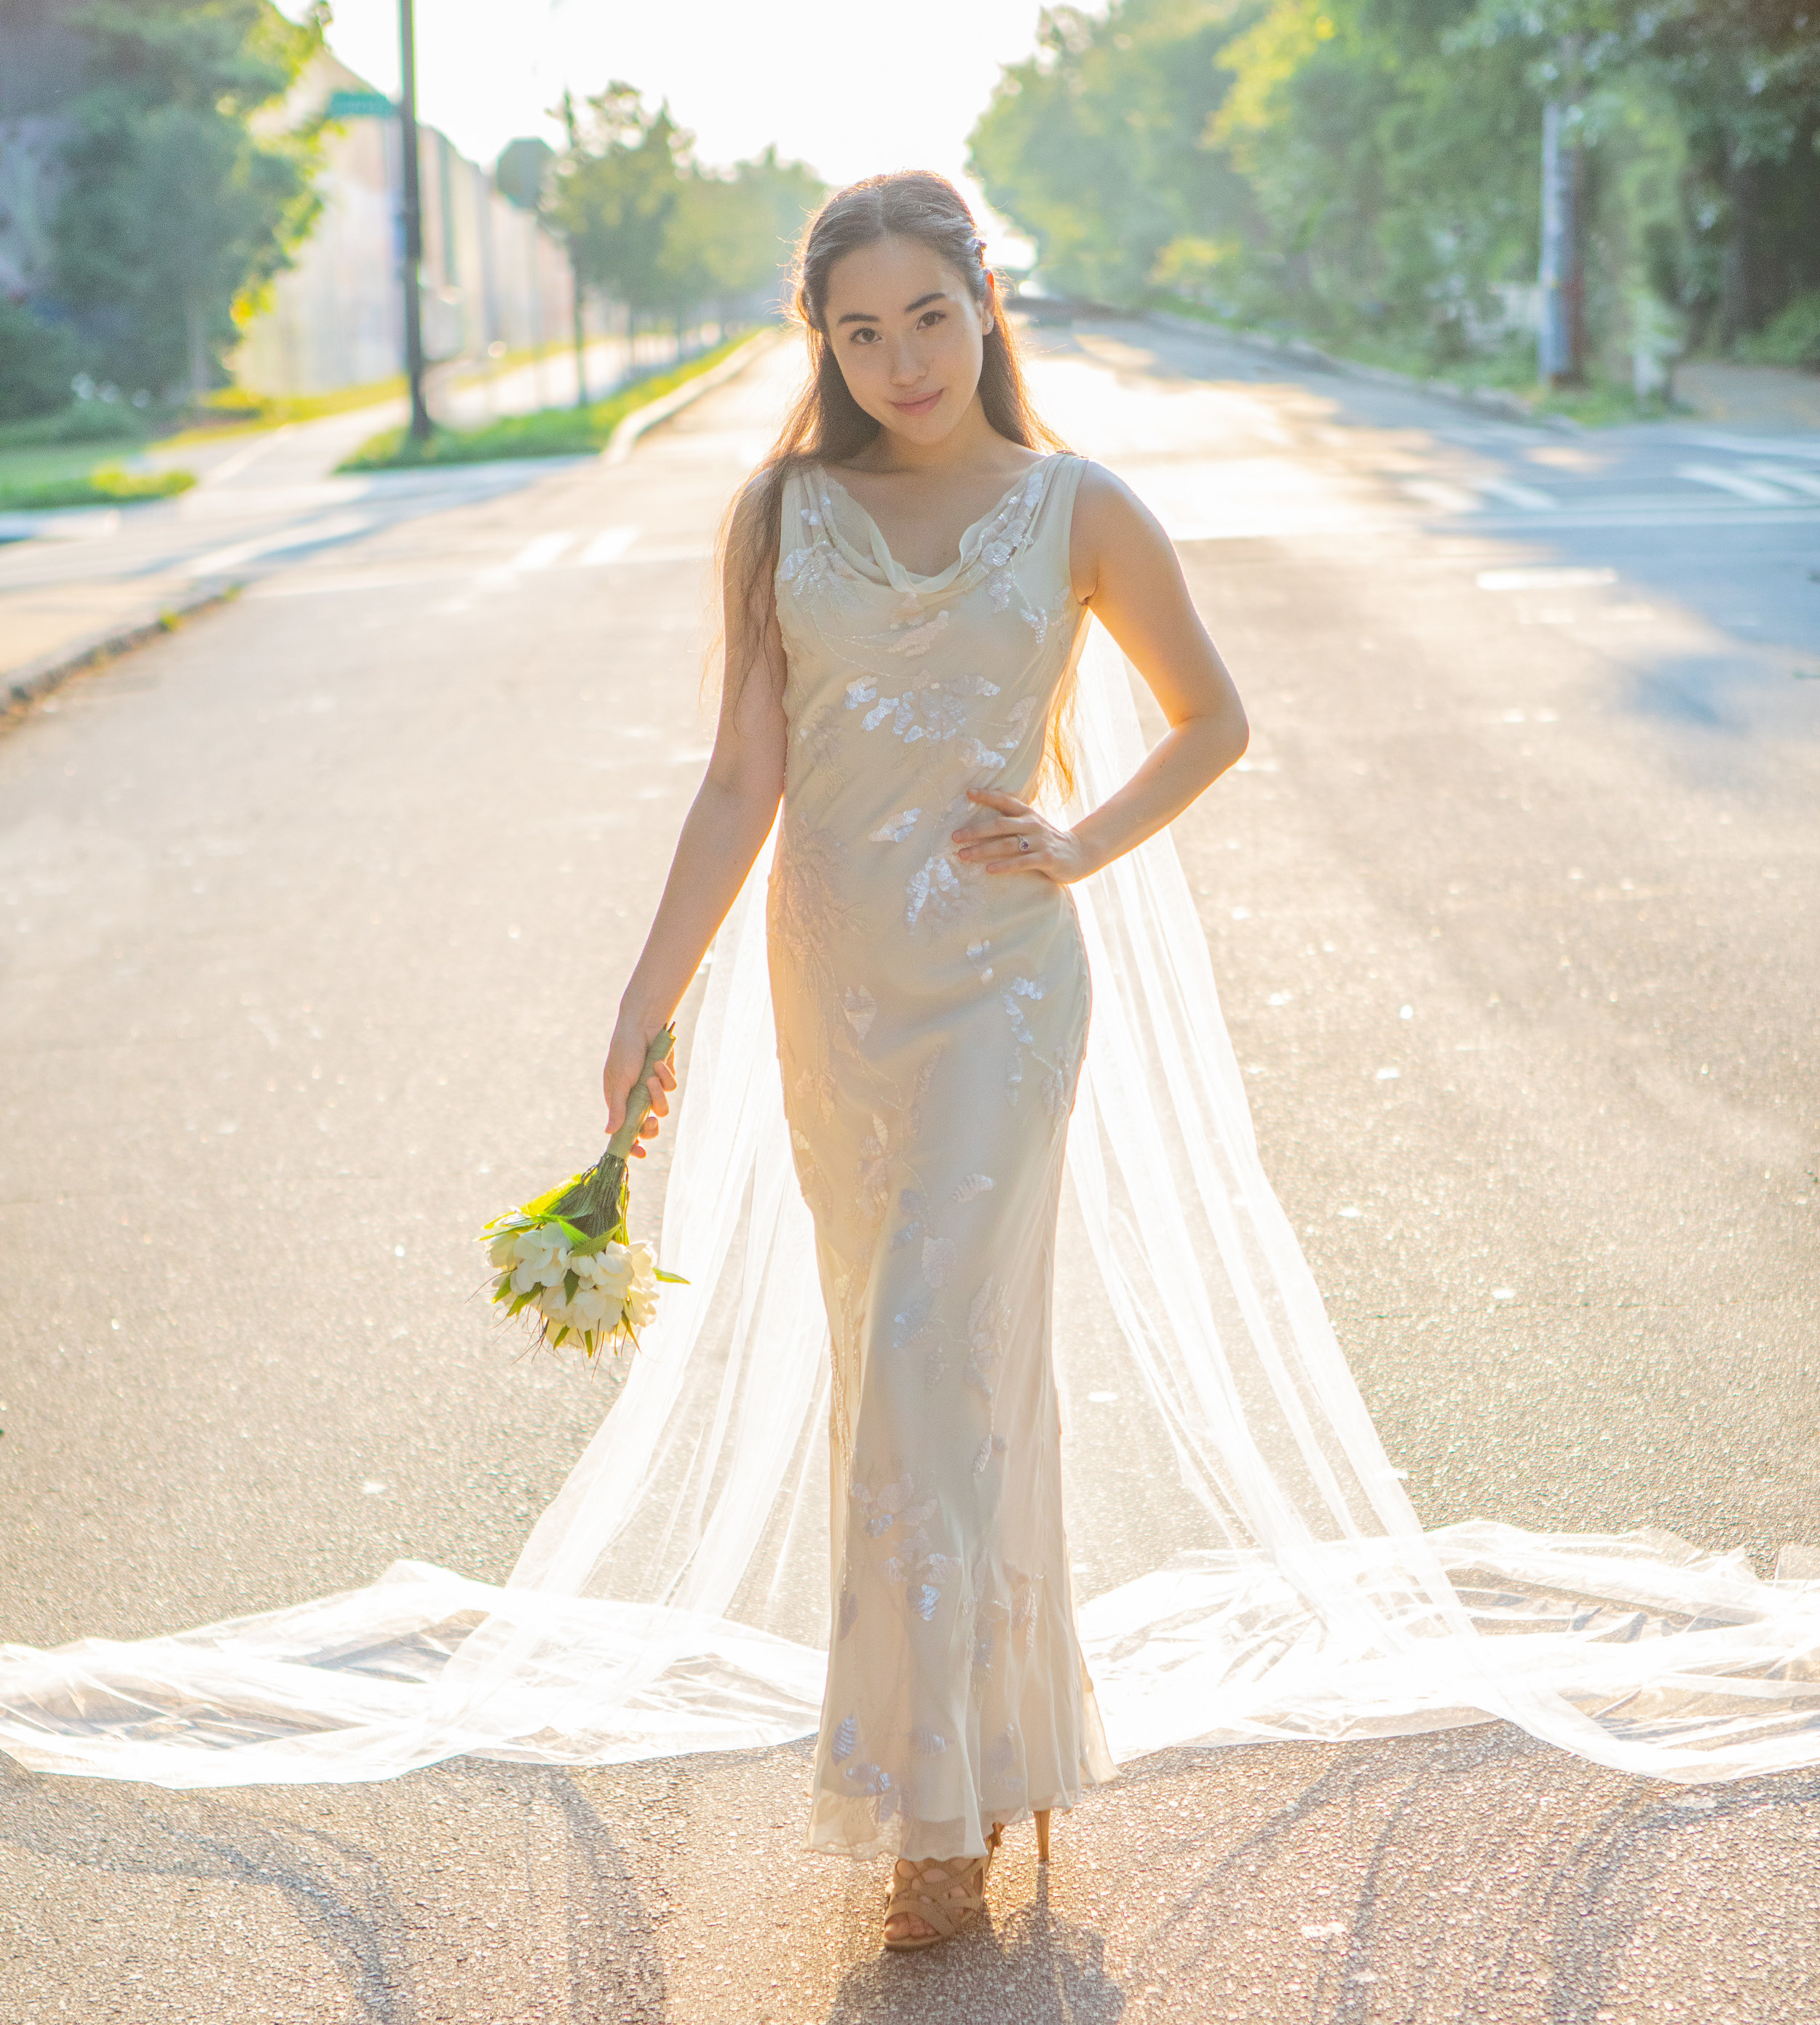 Inman Park - Cabbage town  Photo by the Atlanta Wedding Photographers at AtlantaArtisticWeddings